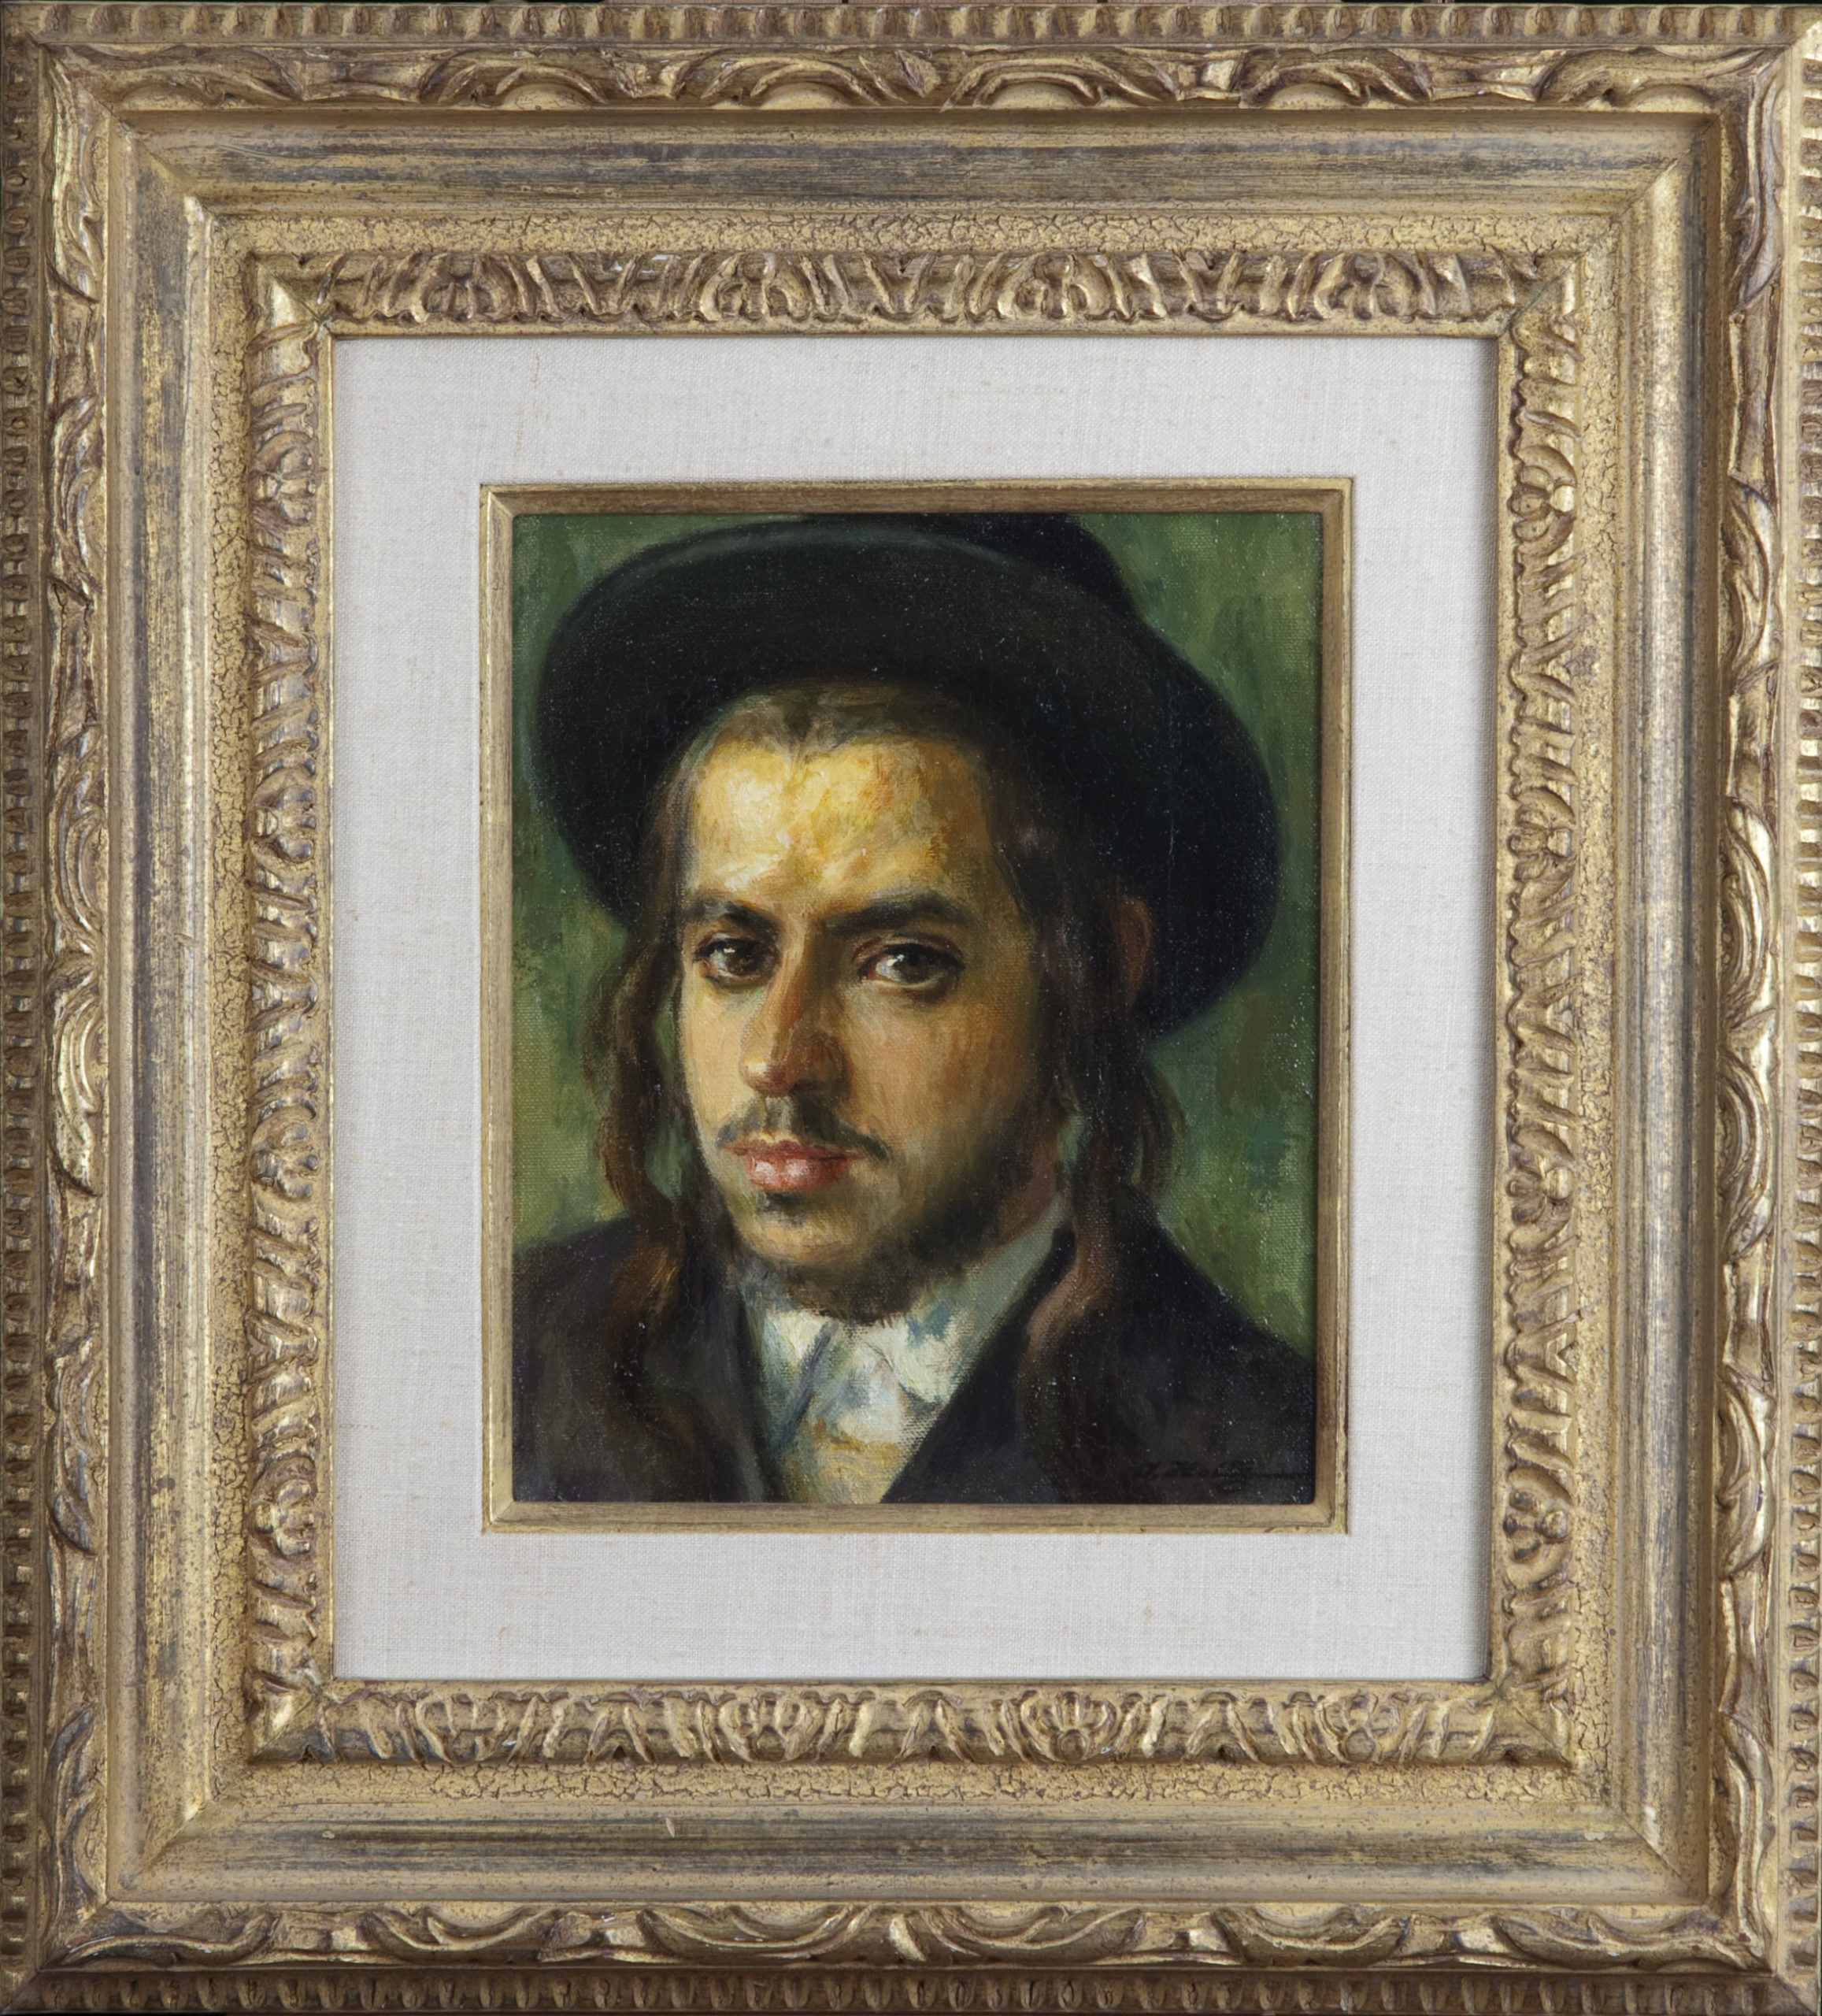 073 Yeshiva Student 1968 - Oil on Canvas - 8 x 10 - Frame: 17.5 x 19.5 x 2.5